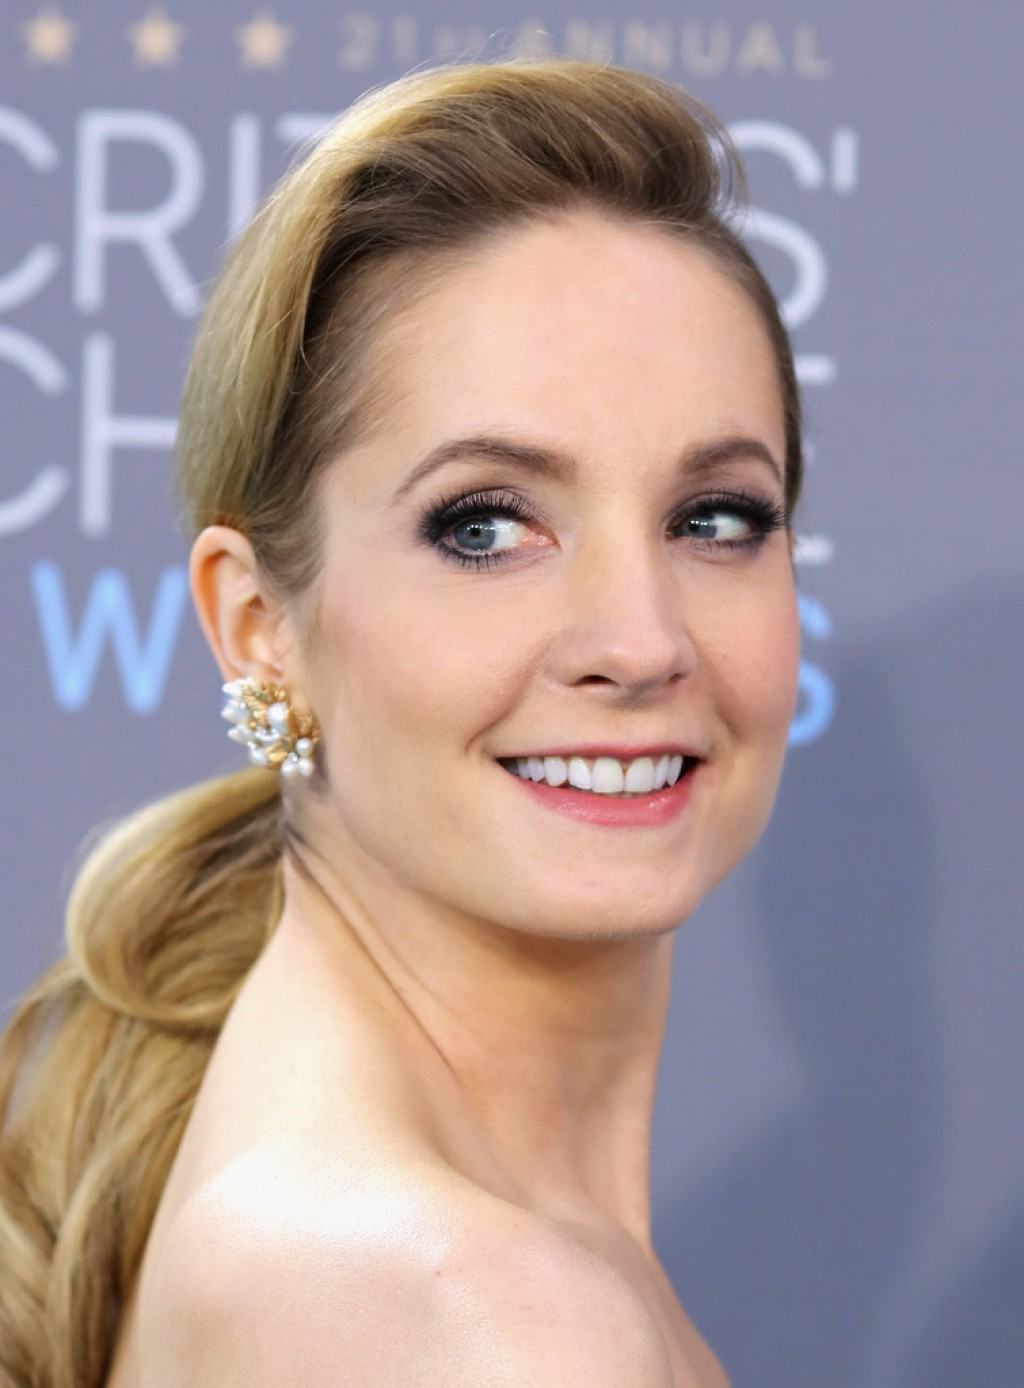 joanne-froggatt-critics-choice-awards-makeup-1024x1388